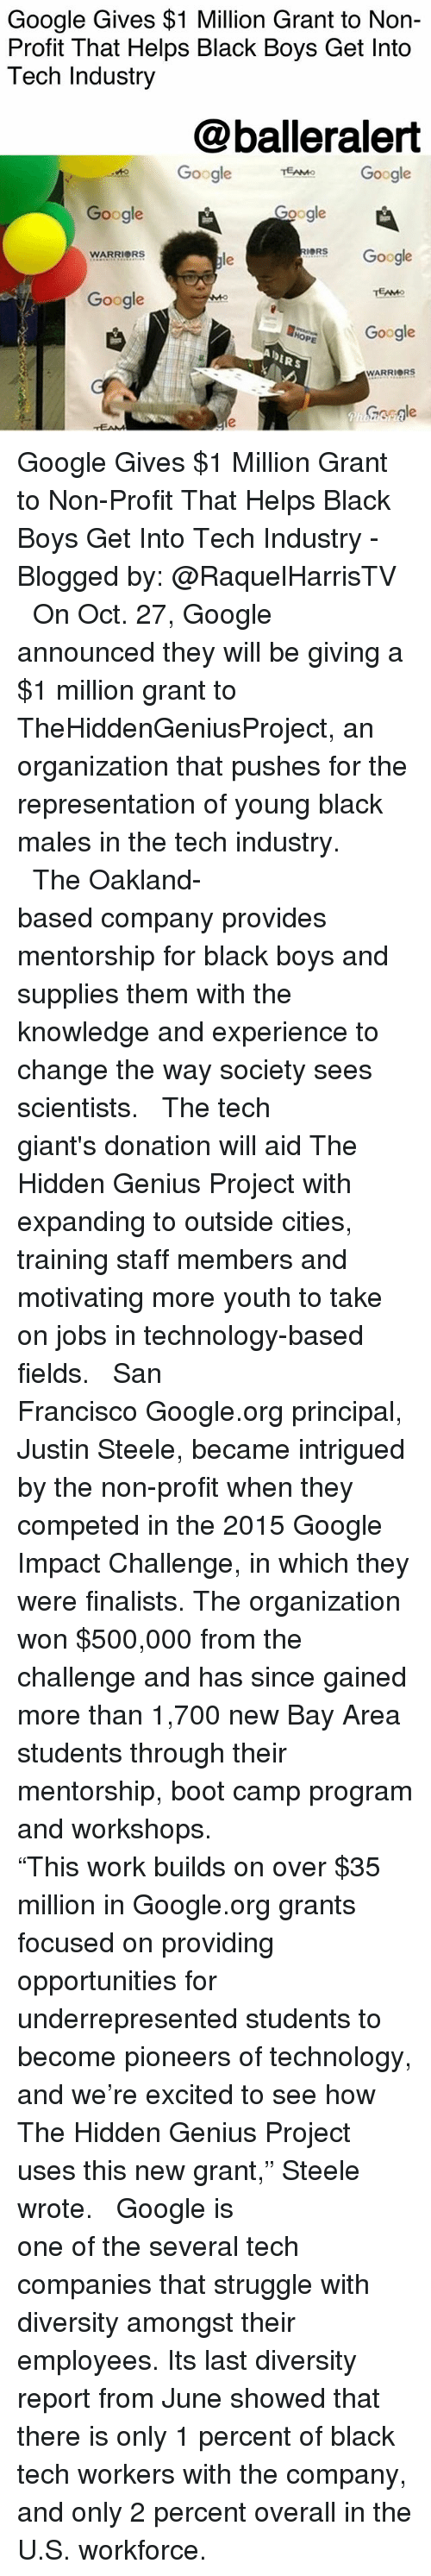 "Google, Memes, and Struggle: Google Gives $1 Million Grant to Non-  Profit That Helps Black Boys Get Into  Tech Industry  @balleralert  TEMe Google  Google  Google  IORS  WARRIORS  le  RGoogle  Google  DERS  WARRIORS  asgle Google Gives $1 Million Grant to Non-Profit That Helps Black Boys Get Into Tech Industry - Blogged by: @RaquelHarrisTV ⠀⠀⠀⠀⠀⠀⠀⠀⠀ ⠀⠀⠀⠀⠀⠀⠀⠀⠀ On Oct. 27, Google announced they will be giving a $1 million grant to TheHiddenGeniusProject, an organization that pushes for the representation of young black males in the tech industry. ⠀⠀⠀⠀⠀⠀⠀⠀⠀ ⠀⠀⠀⠀⠀⠀⠀⠀⠀ The Oakland-based company provides mentorship for black boys and supplies them with the knowledge and experience to change the way society sees scientists. ⠀⠀⠀⠀⠀⠀⠀⠀⠀ ⠀⠀⠀⠀⠀⠀⠀⠀⠀ The tech giant's donation will aid The Hidden Genius Project with expanding to outside cities, training staff members and motivating more youth to take on jobs in technology-based fields. ⠀⠀⠀⠀⠀⠀⠀⠀⠀ ⠀⠀⠀⠀⠀⠀⠀⠀⠀ San Francisco Google.org principal, Justin Steele, became intrigued by the non-profit when they competed in the 2015 Google Impact Challenge, in which they were finalists. The organization won $500,000 from the challenge and has since gained more than 1,700 new Bay Area students through their mentorship, boot camp program and workshops. ⠀⠀⠀⠀⠀⠀⠀⠀⠀ ⠀⠀⠀⠀⠀⠀⠀⠀⠀ ""This work builds on over $35 million in Google.org grants focused on providing opportunities for underrepresented students to become pioneers of technology, and we're excited to see how The Hidden Genius Project uses this new grant,"" Steele wrote. ⠀⠀⠀⠀⠀⠀⠀⠀⠀ ⠀⠀⠀⠀⠀⠀⠀⠀⠀ Google is one of the several tech companies that struggle with diversity amongst their employees. Its last diversity report from June showed that there is only 1 percent of black tech workers with the company, and only 2 percent overall in the U.S. workforce."